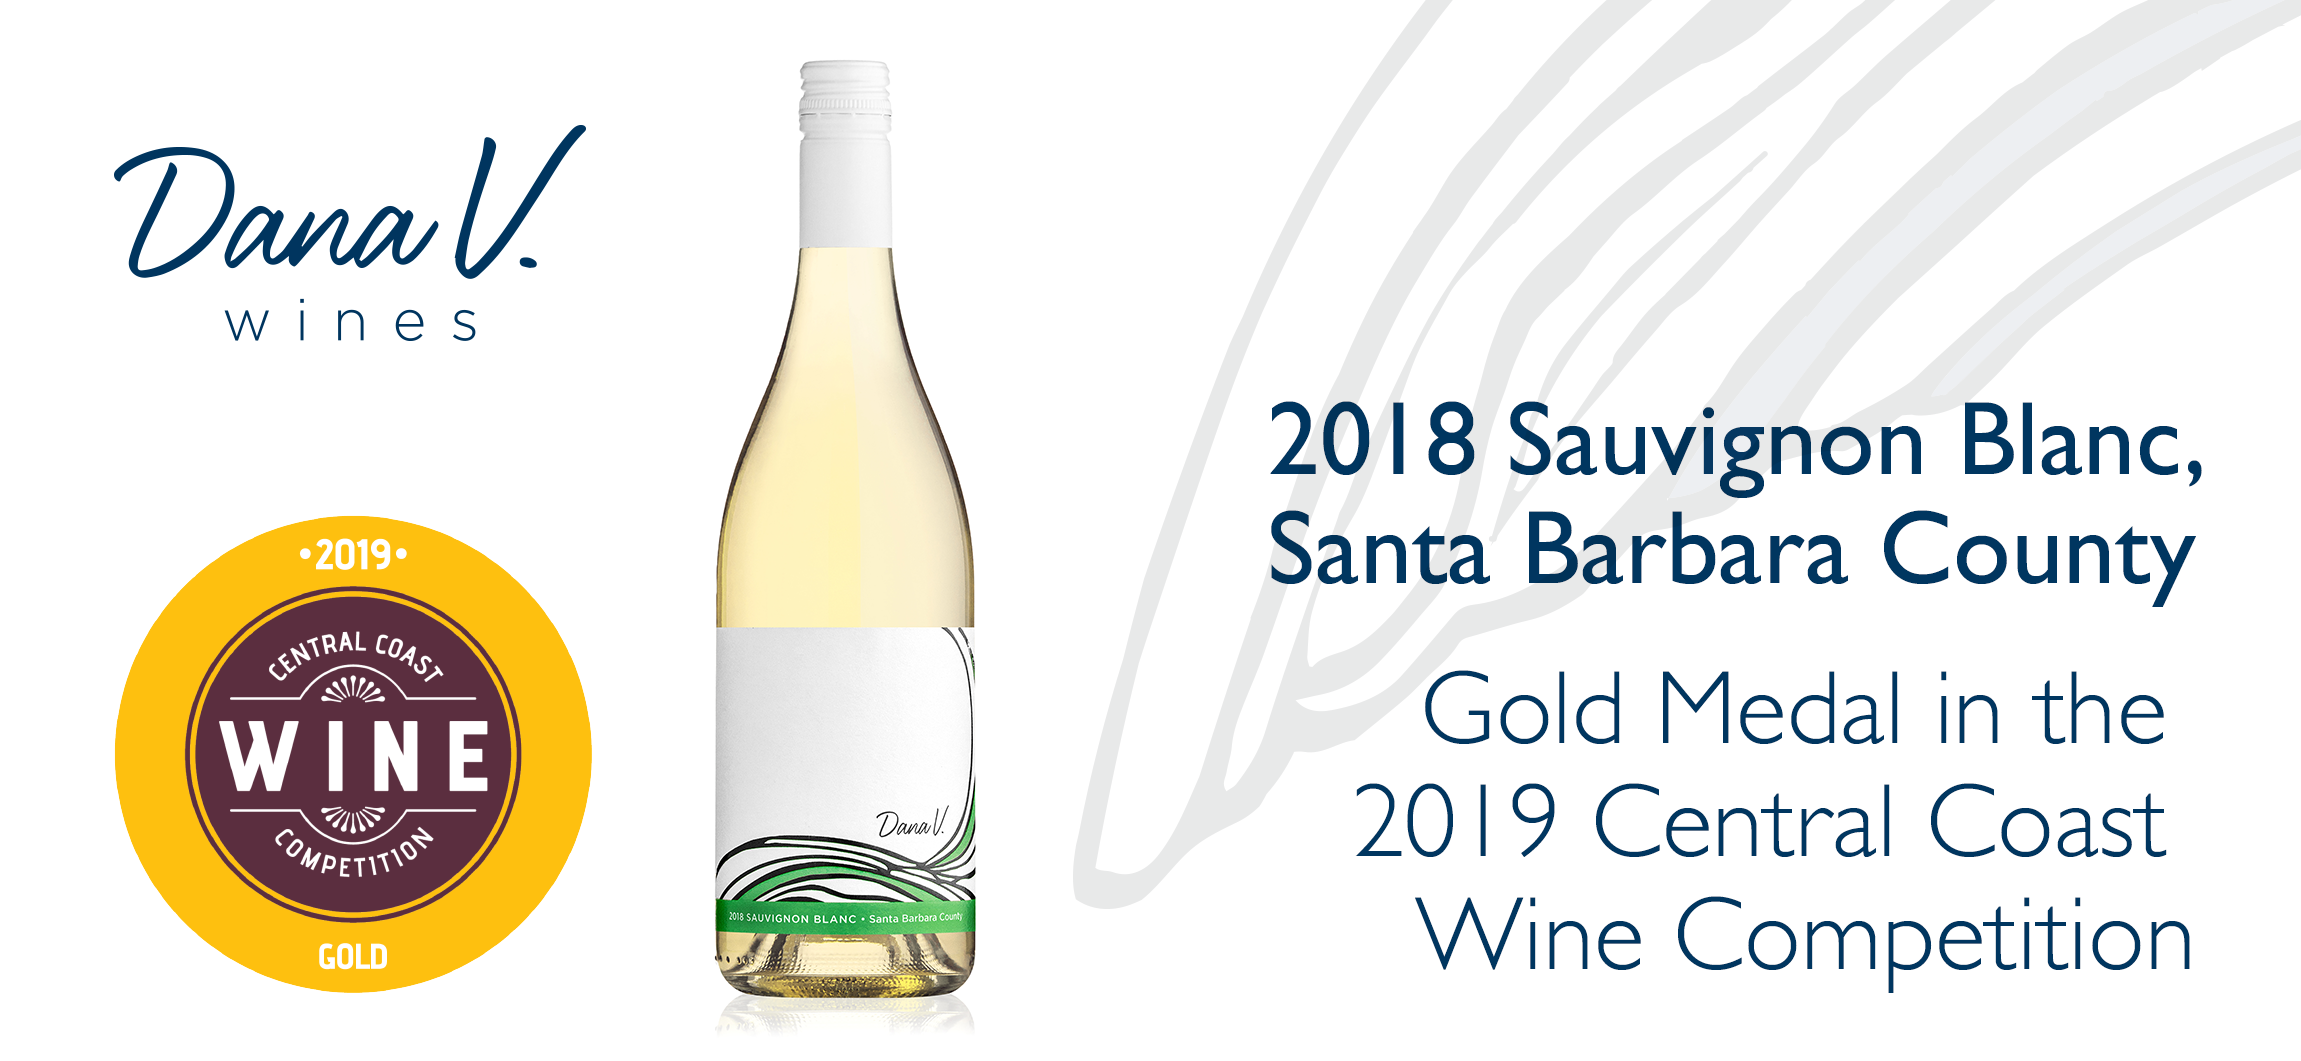 Sauvignon Blanc won the gold medal in the 2019 central coast wine competition